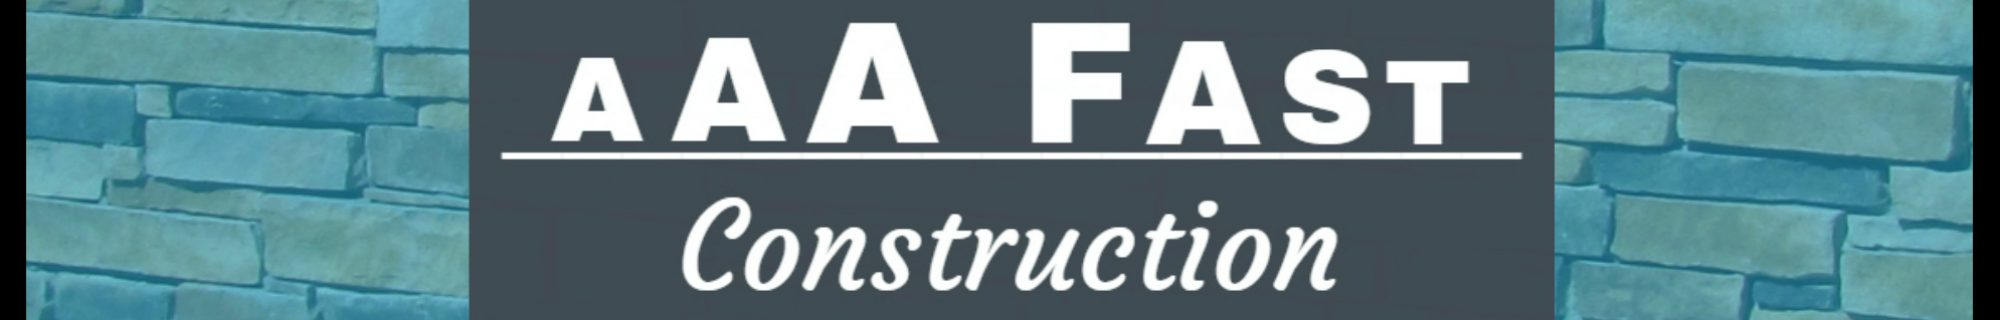 AAA Fast Construction Blog